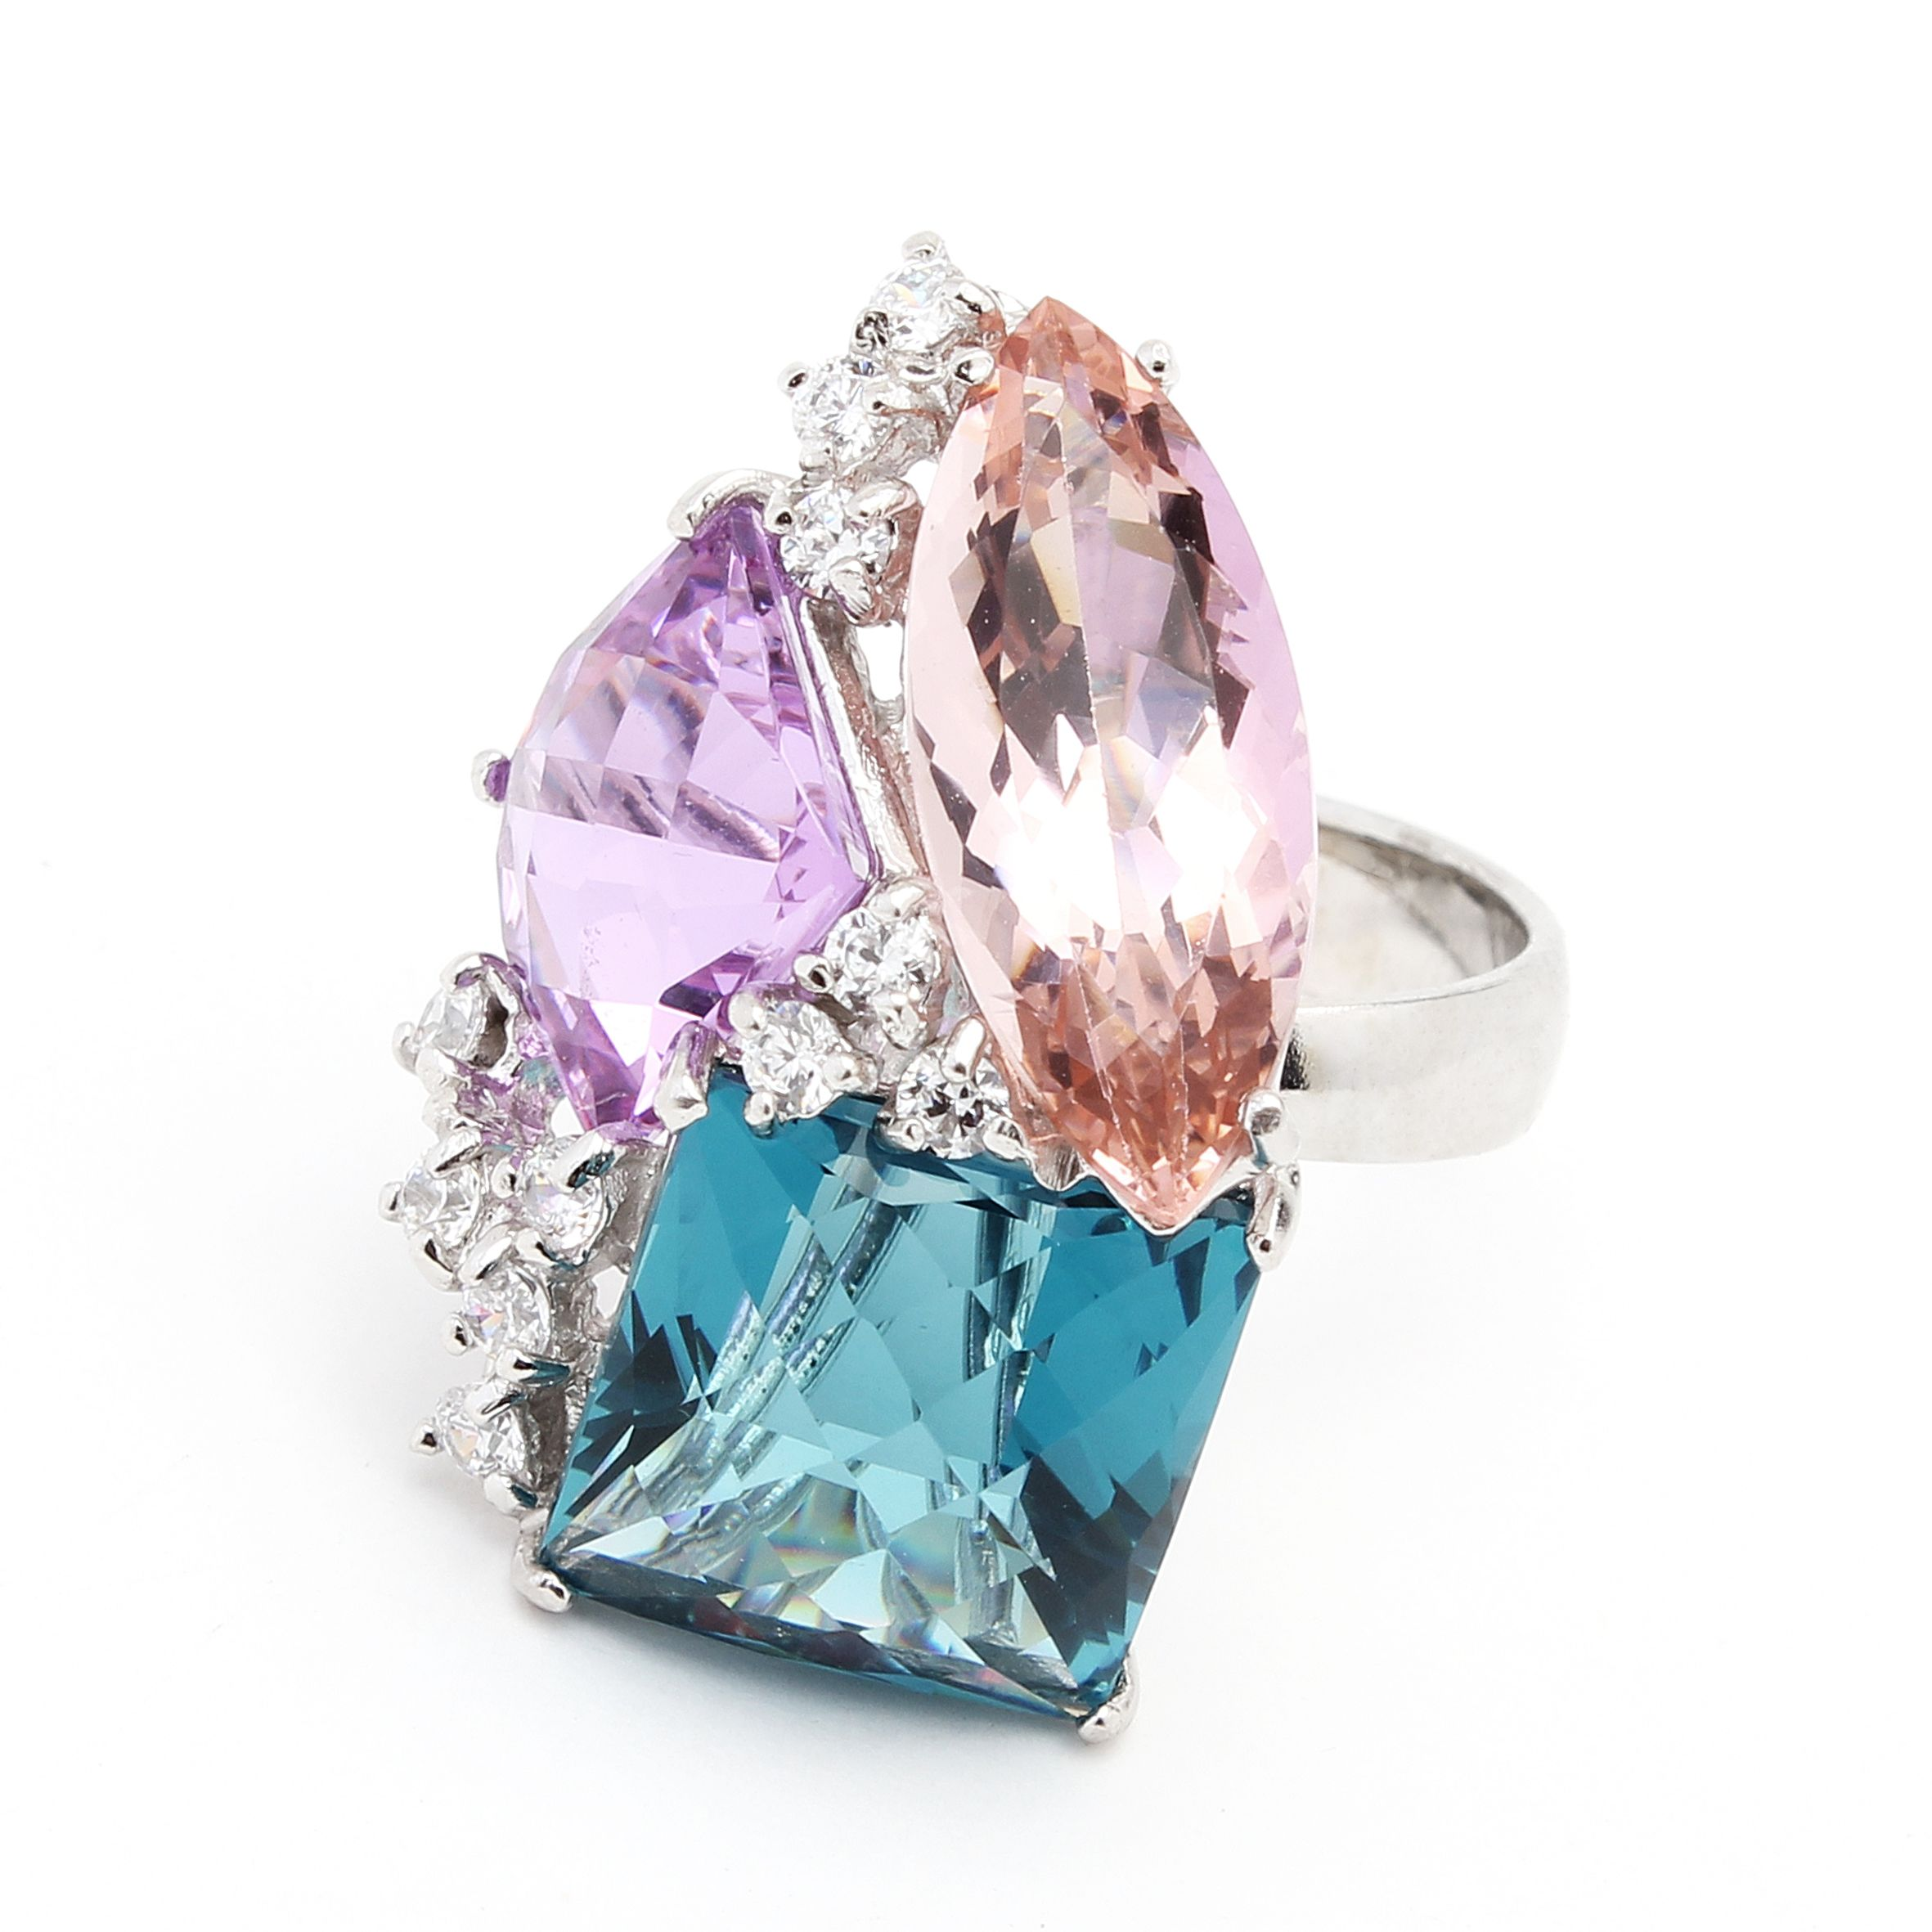 Transformation Ring - Cristales See more on http://www.oleanajewelry.com/